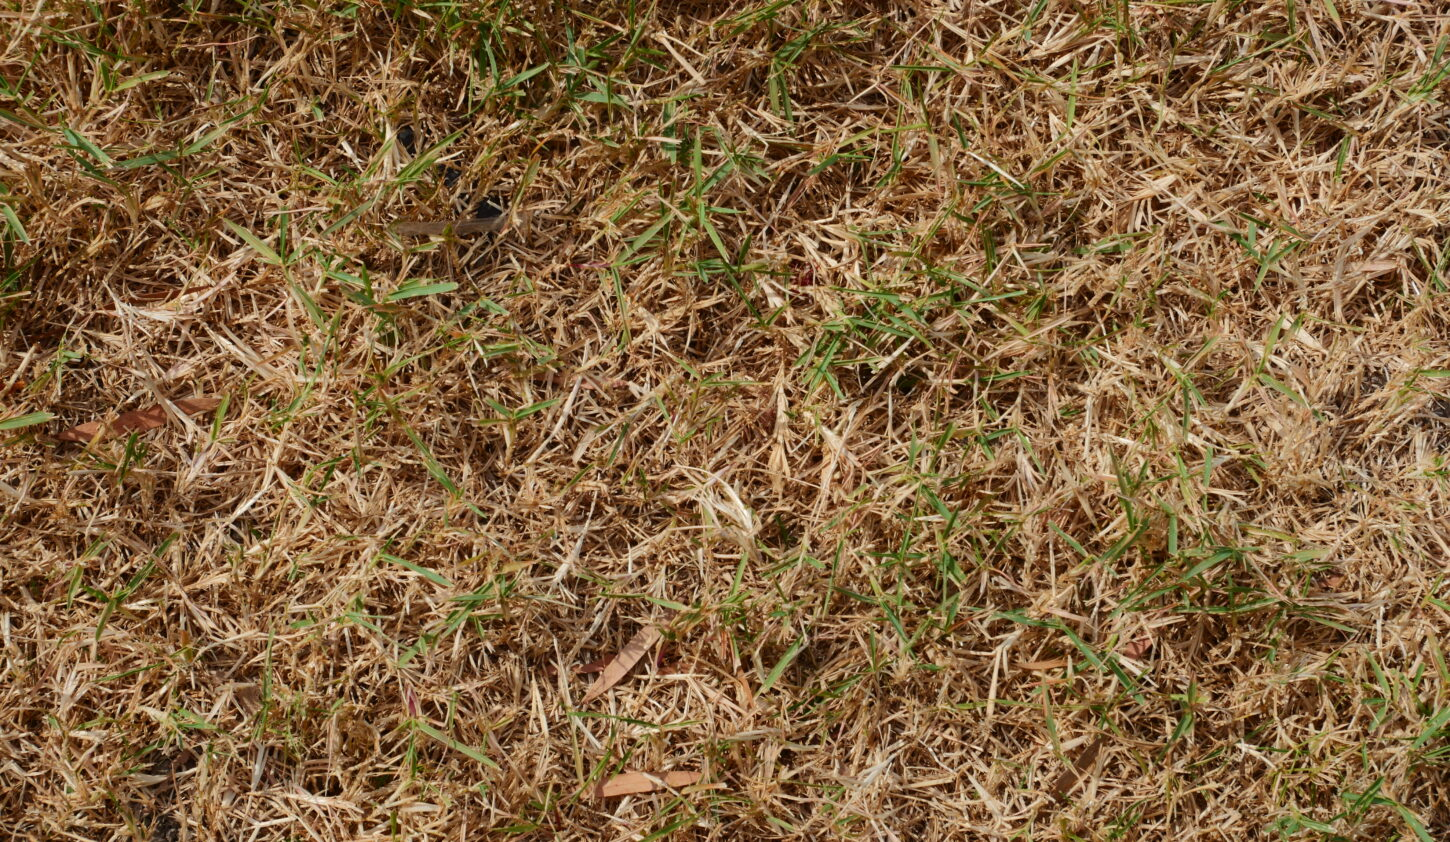 Dried out lawn